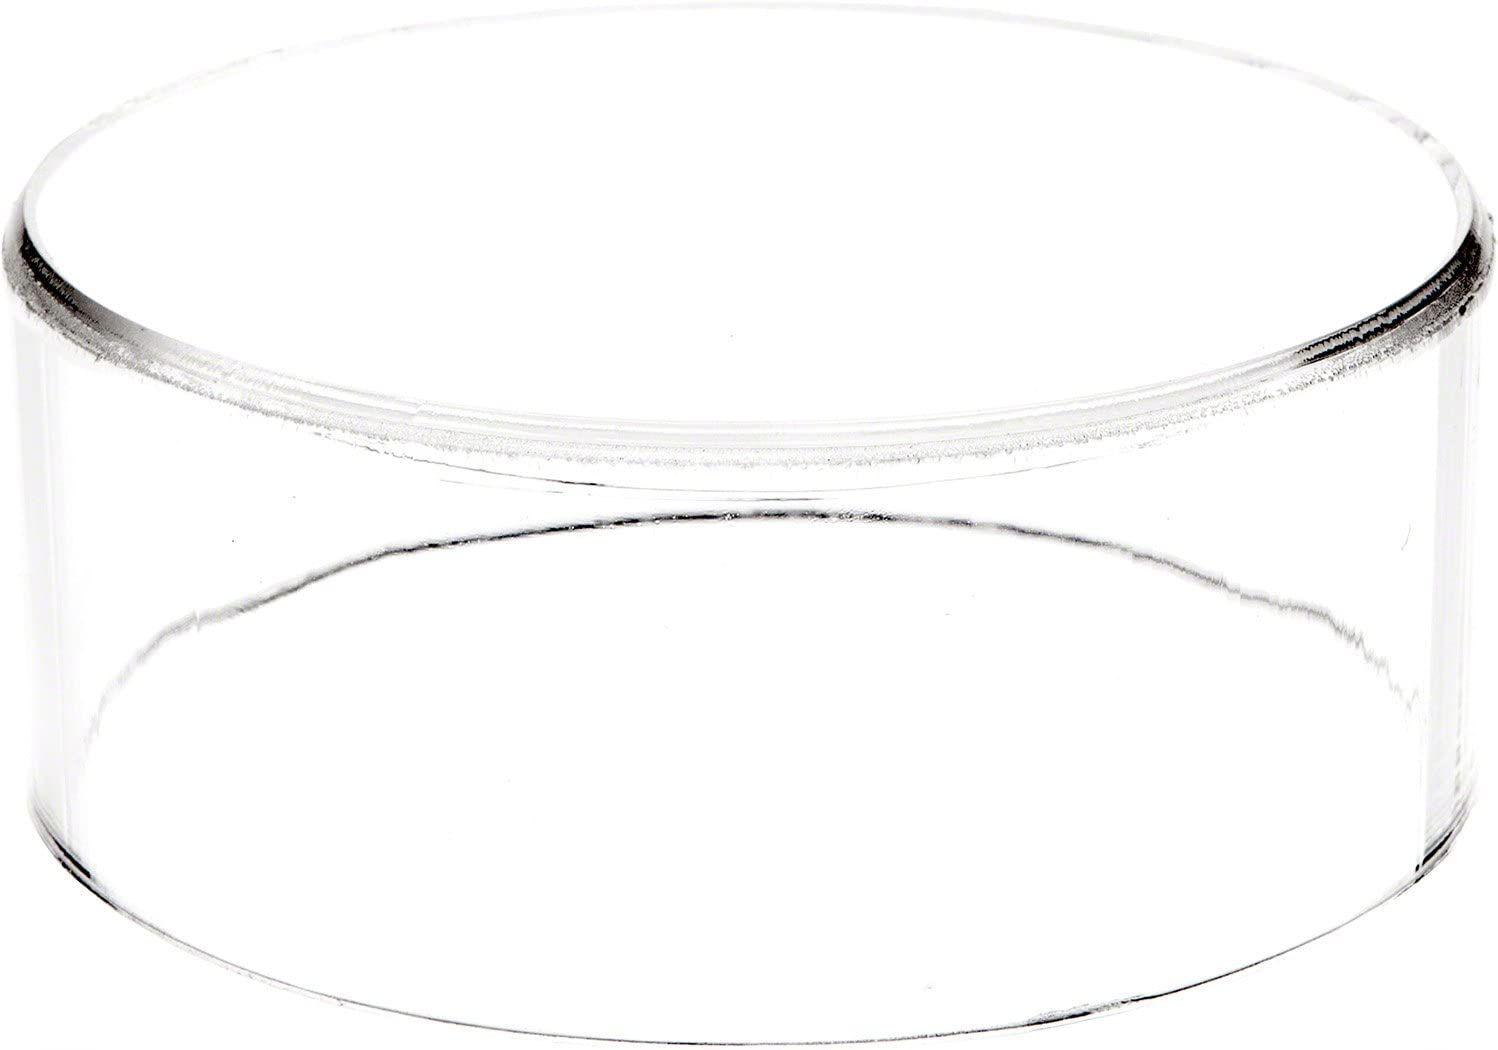 Plymor Clear Acrylic Round Cylinder Display Riser, 2 inches (Height) x 5 inches (Depth)